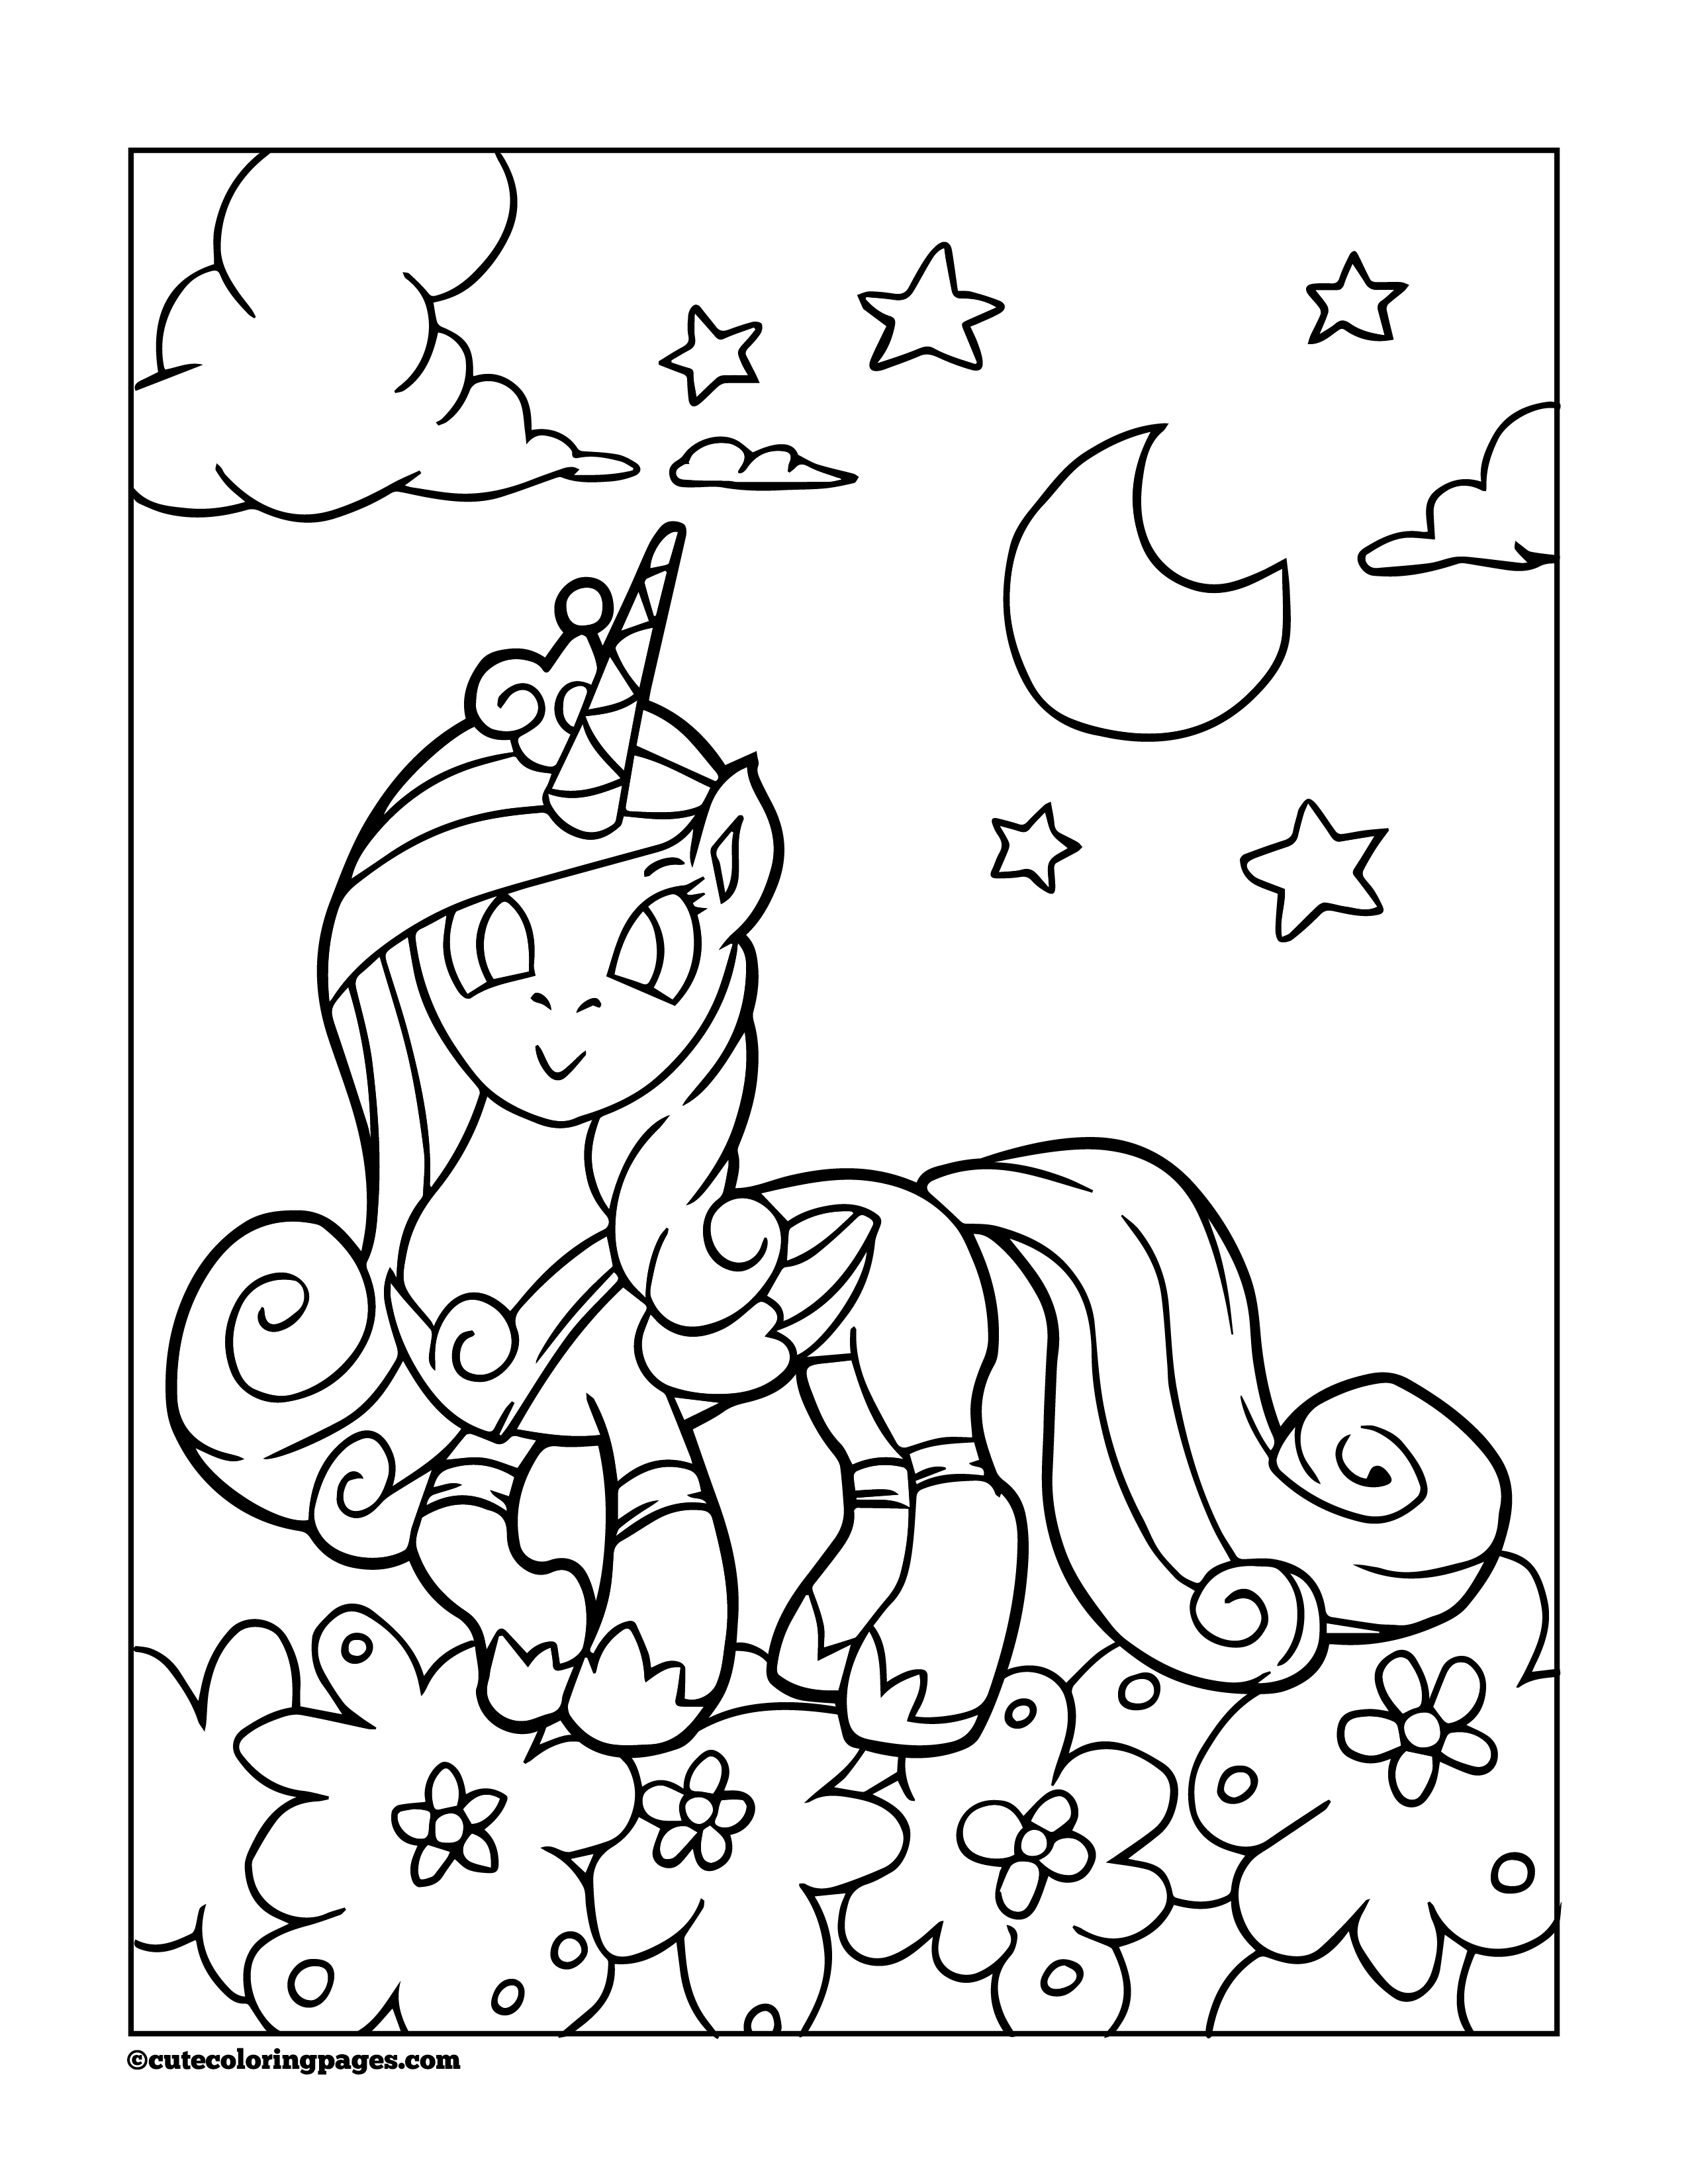 unicorn pictures for coloring free printable unicorn coloring pages for kids unicorn coloring for pictures 1 1